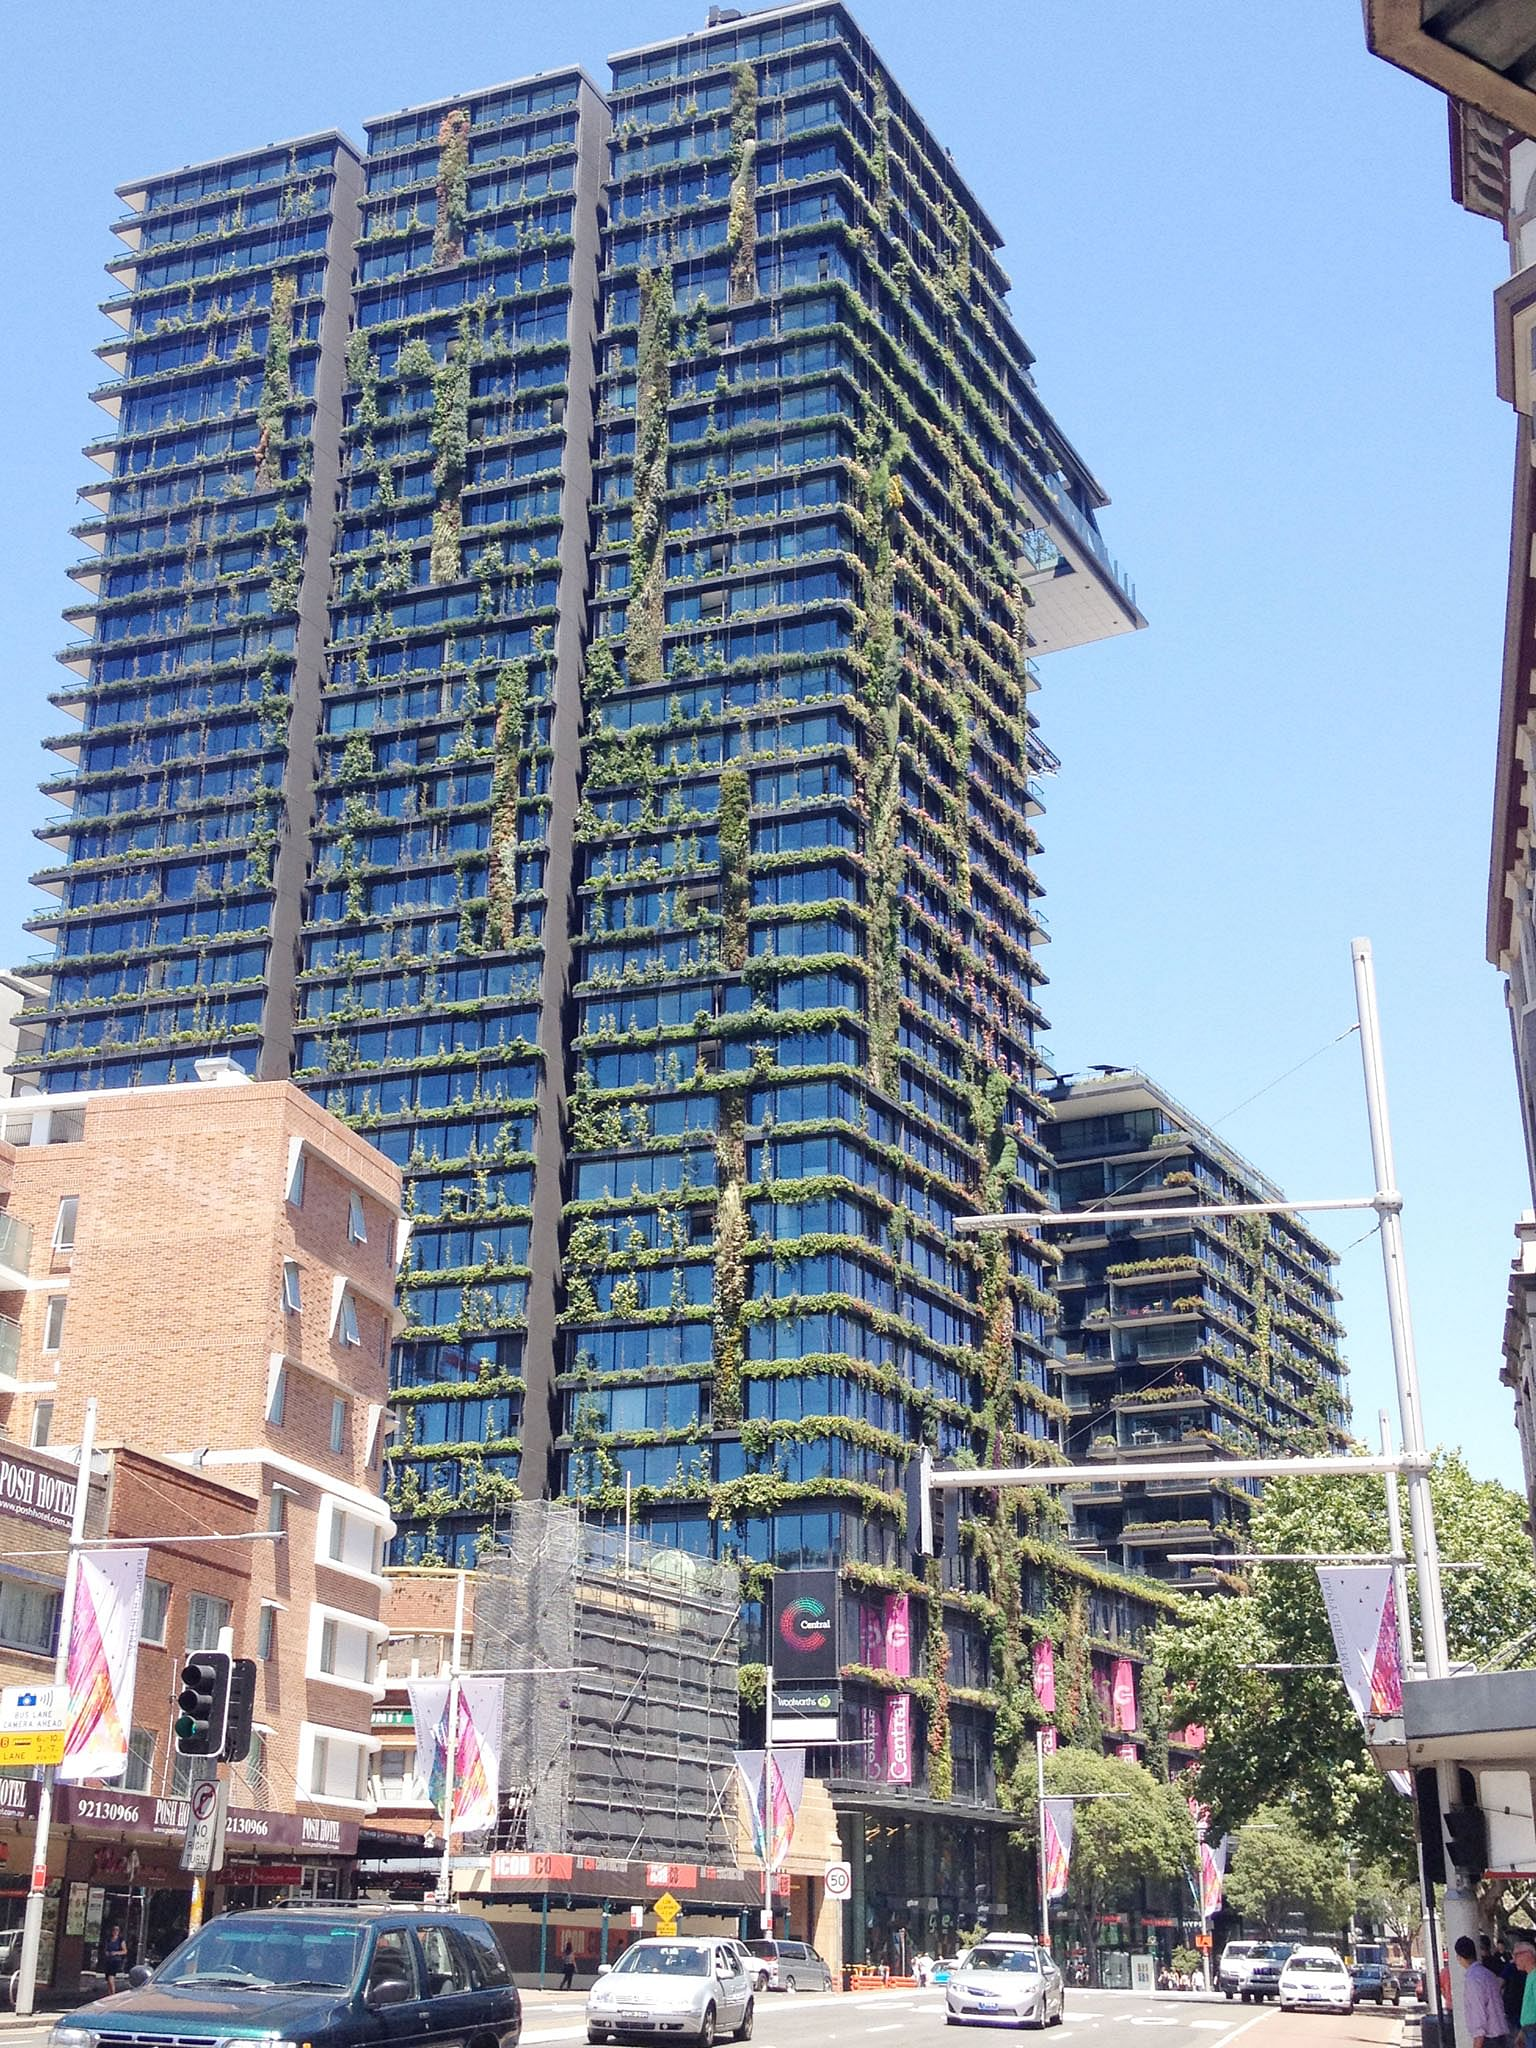 Frasers Property, partner to sell retail assets in Sydney, Companies